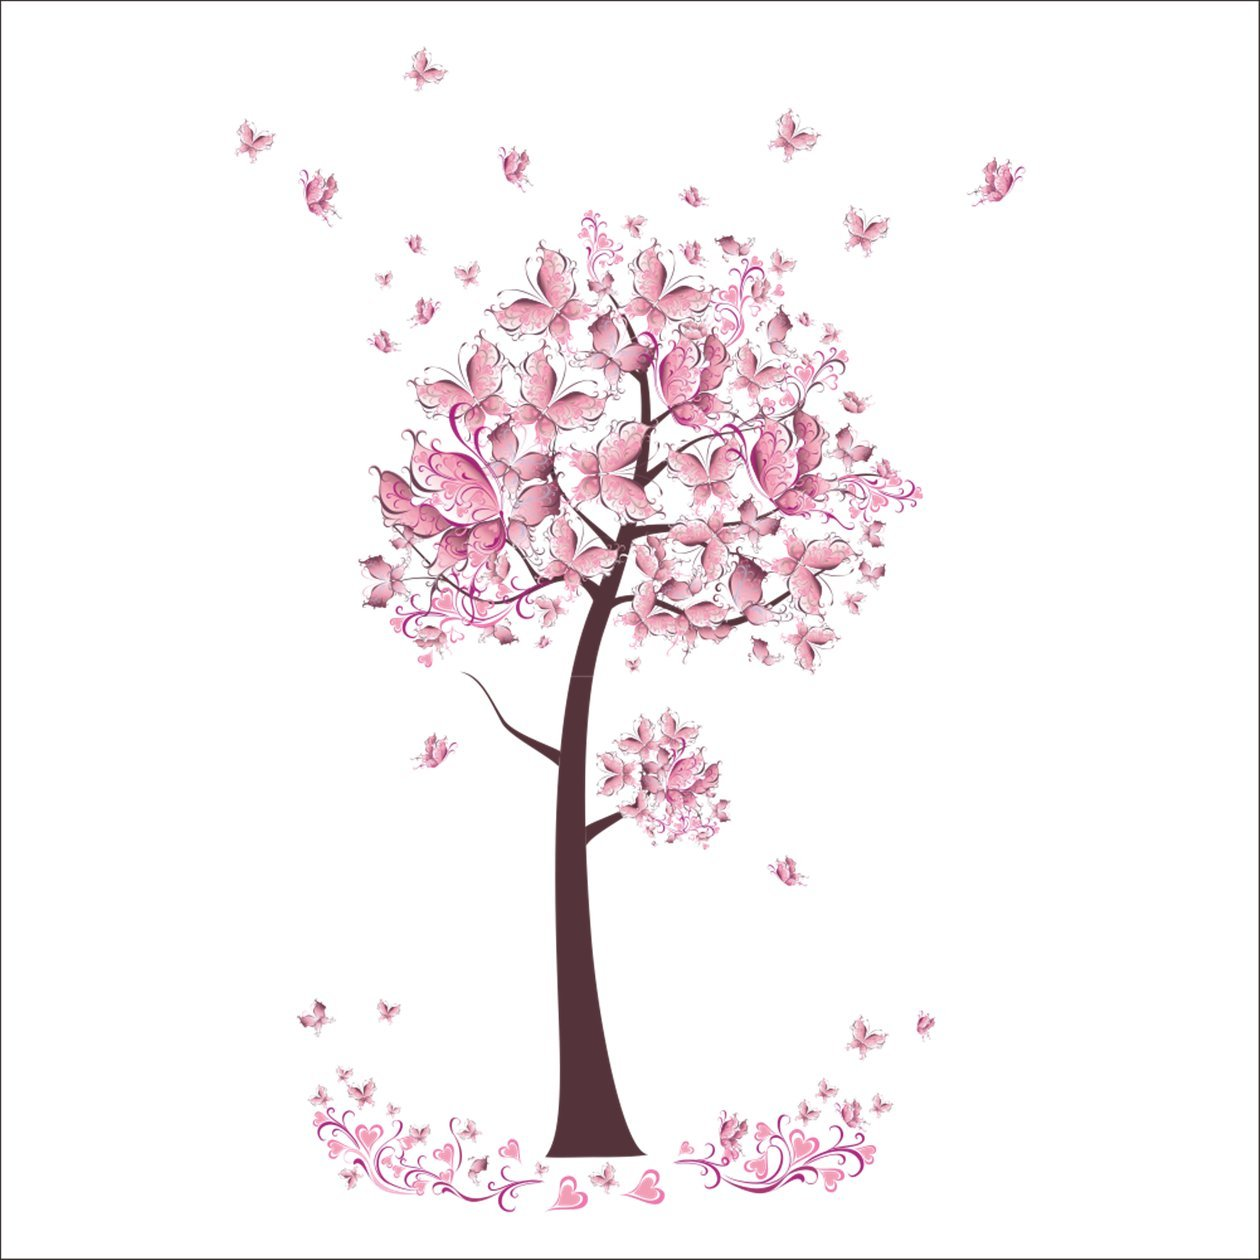 1 Pack Pink Butterfly Flower Tree Wall Stickers Decals Mural Vinyl Wallpaper Home Living Room Bedroom Princess Nursery Optimum Popular Dream World Moon Star Ocean Sun Removable Window Art Decor